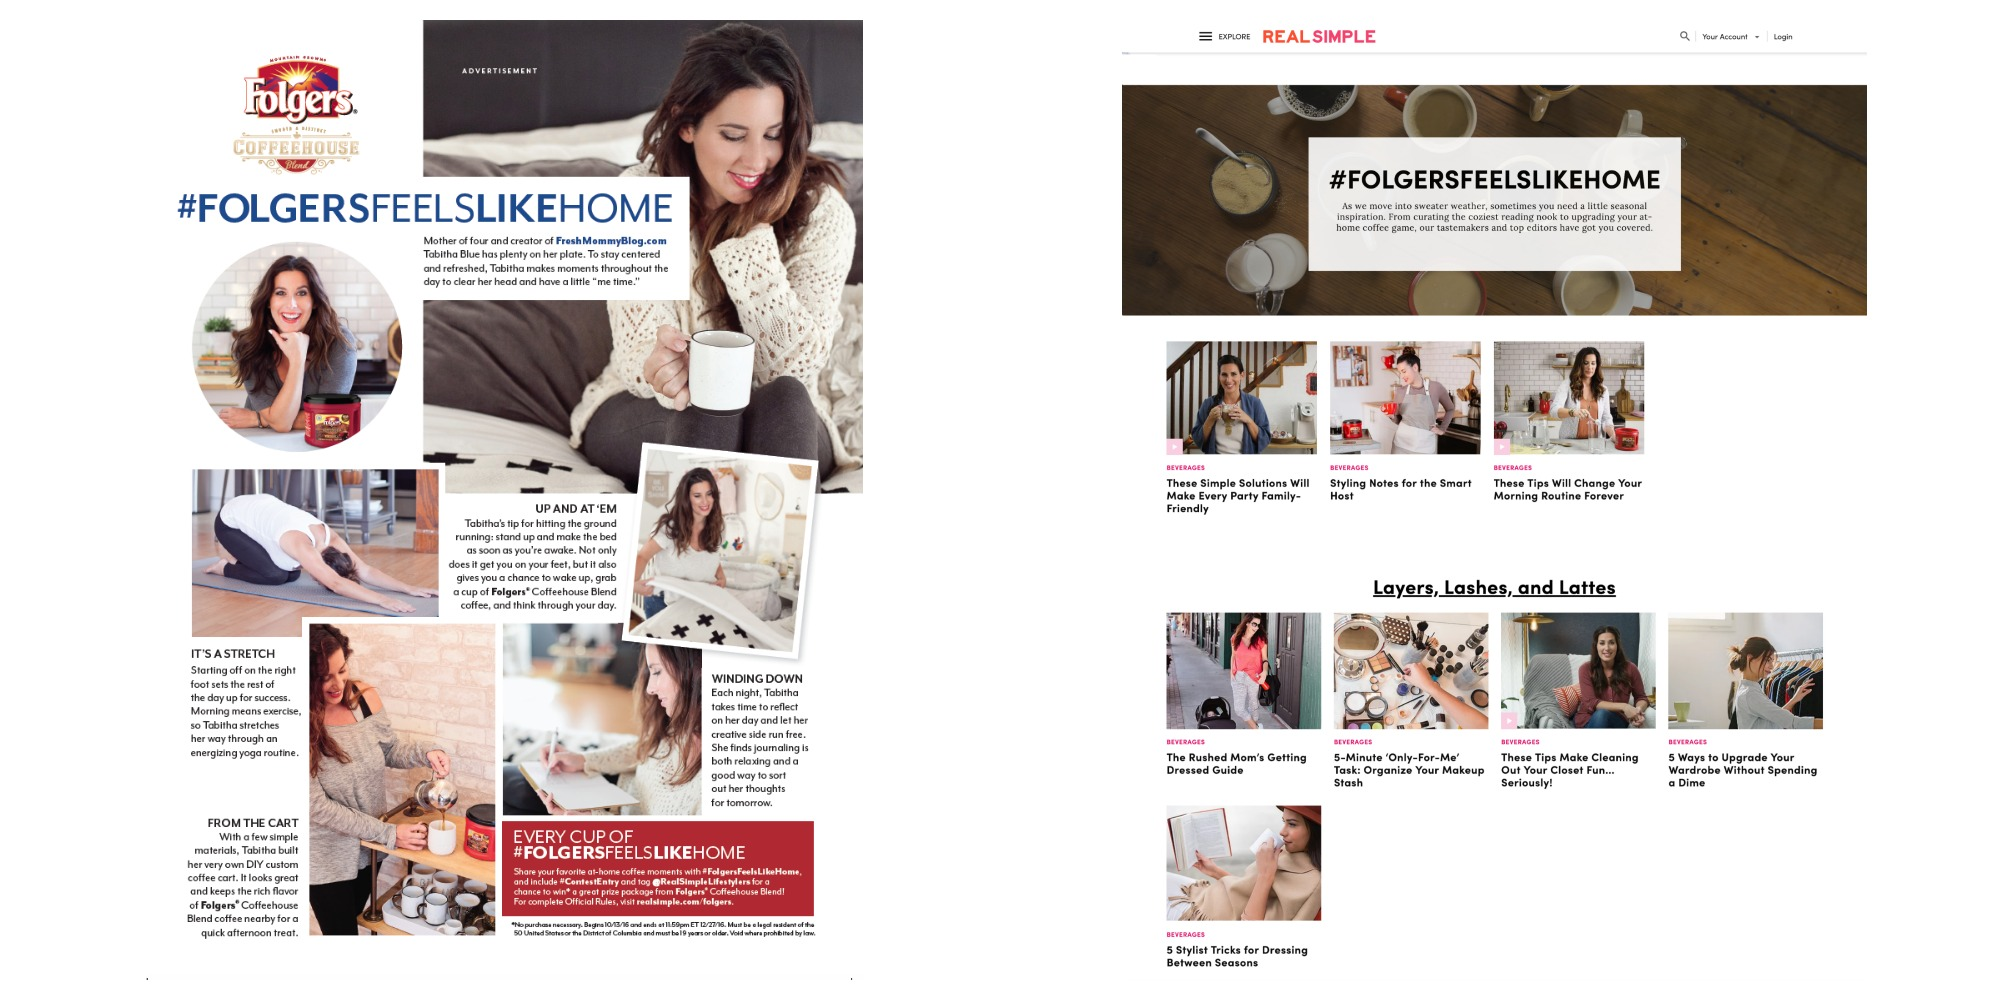 Full-page branded content for Folgers in  People and  co-branded content hub on  realsimple.com.  Print campaign also appeared in  Health, Real Simple, Southern Living,  and  InStyle.